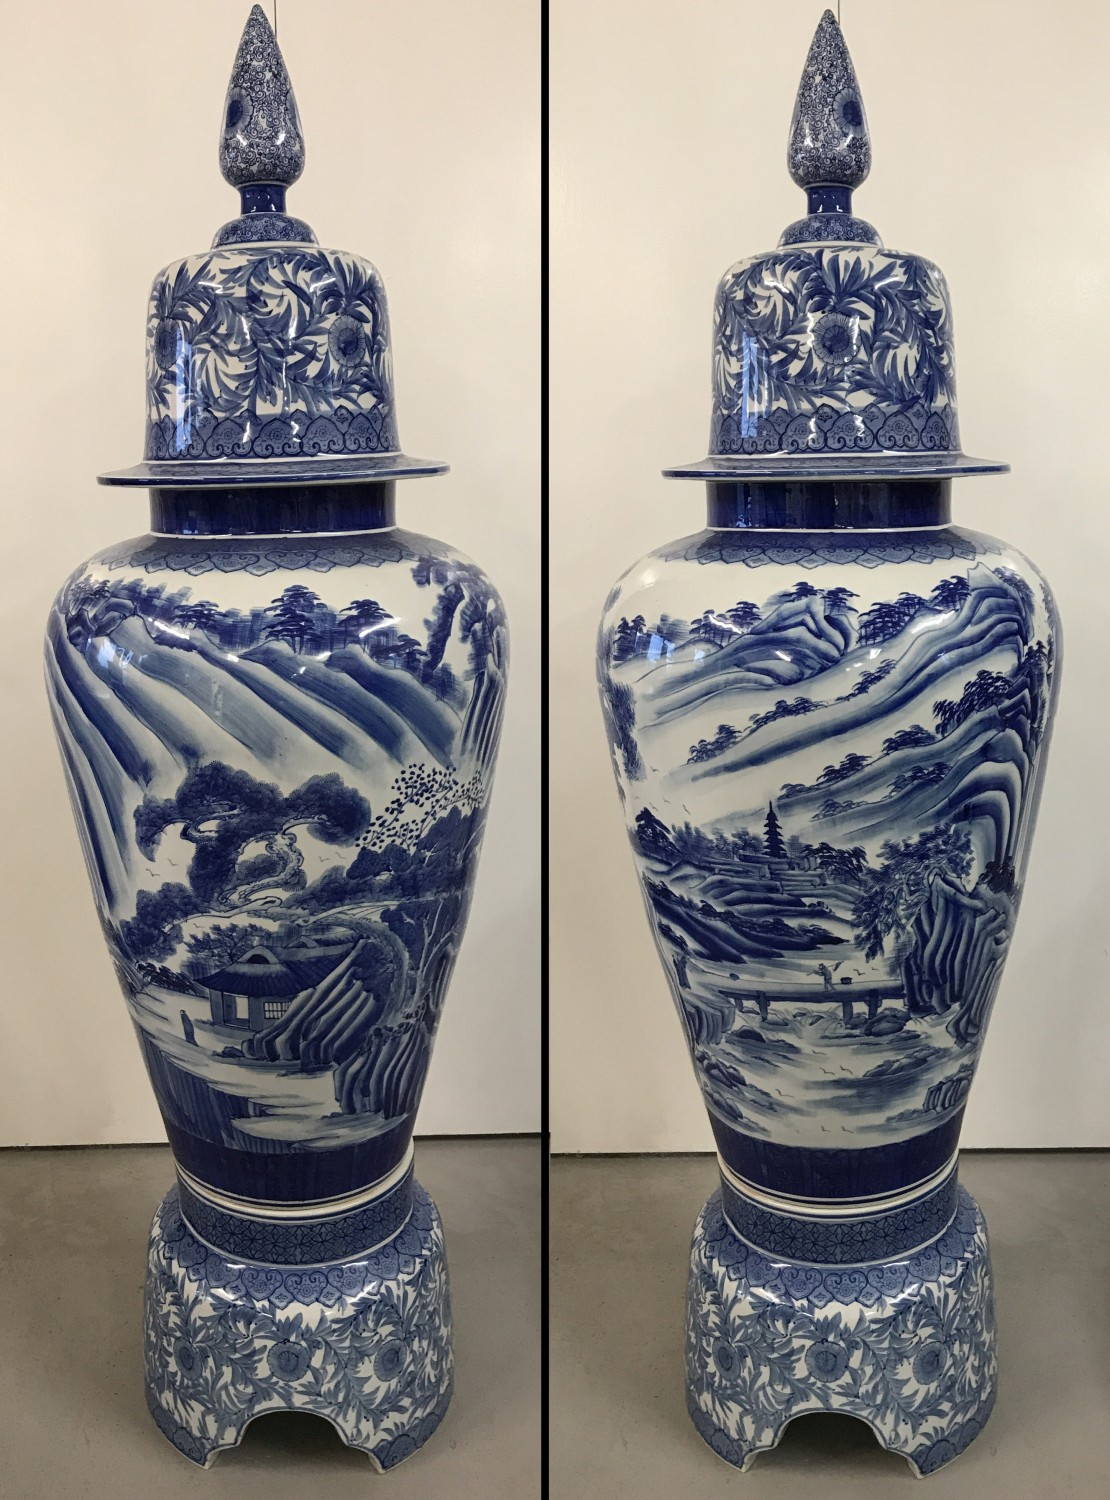 Lot 71 - A very large Chinese blue and white ceramic lidded urn on a seperate pedestal base.